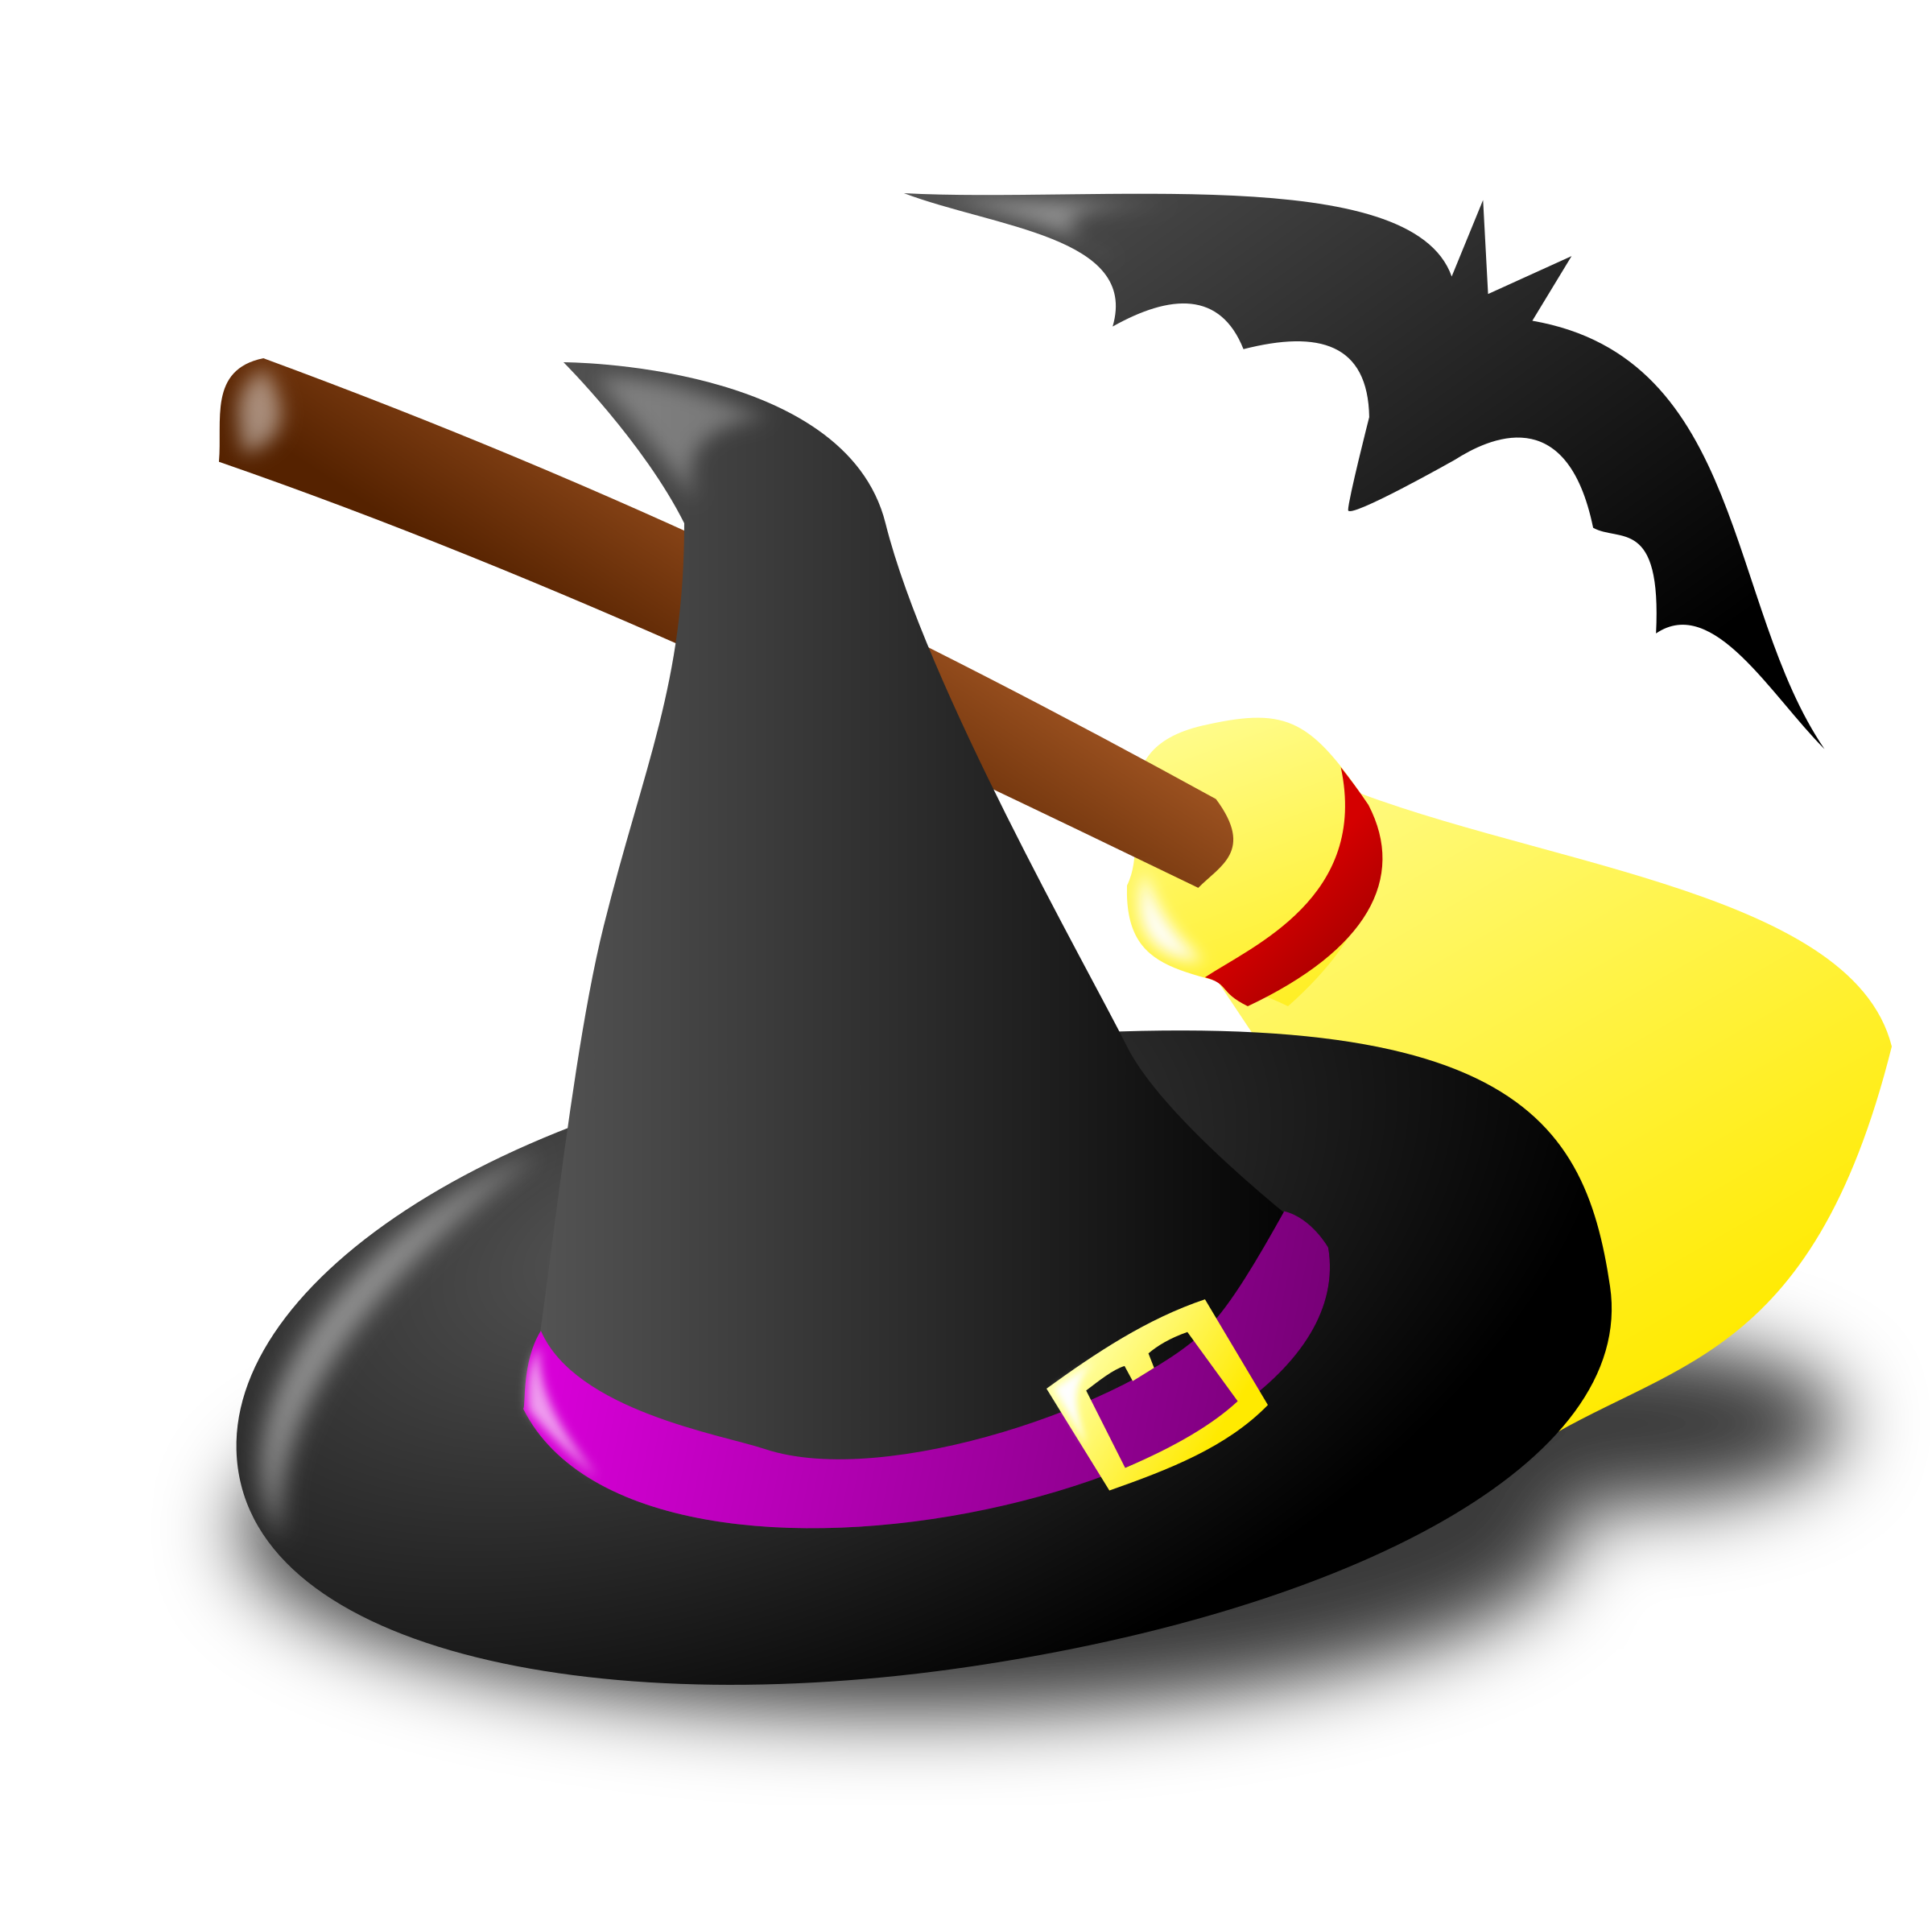 Clipart halloween hats png black and white download Spooky Halloween Stickers - Boo! by Levi Gemmell png black and white download